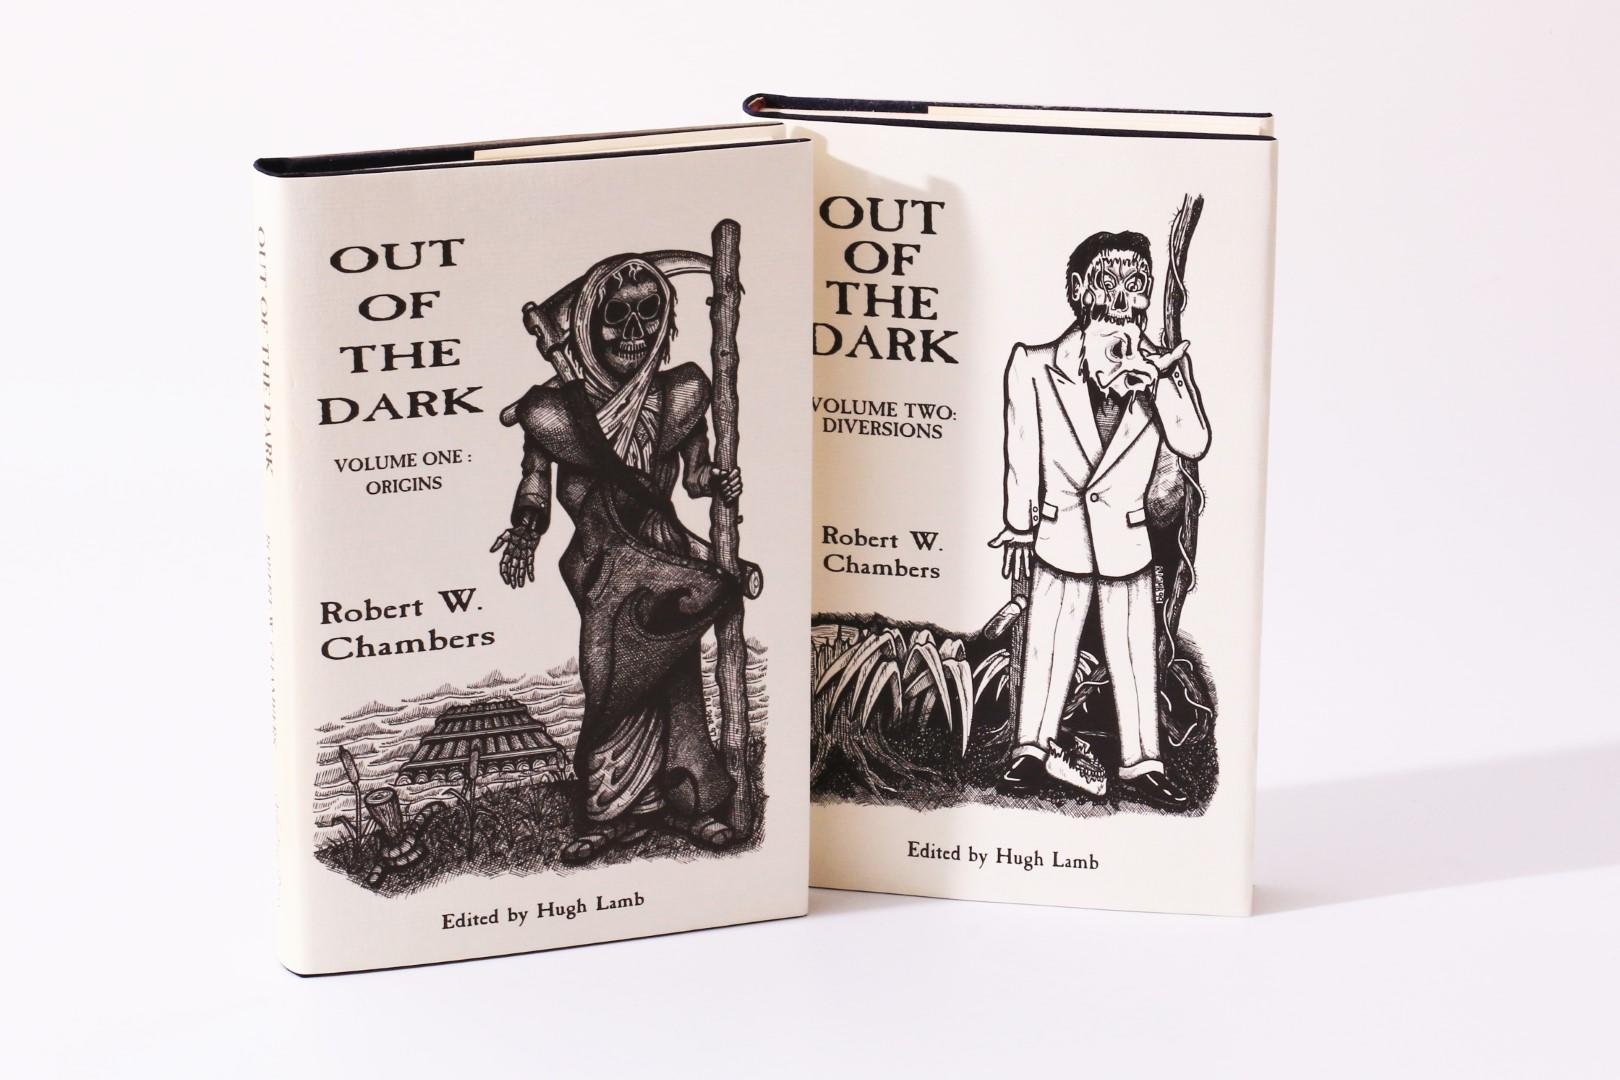 Robert W. Chambers - Out of the Dark Volumes One and Two: Origins and Diversions - Ash-Tree Press, 1998-1999, Limited Edition.